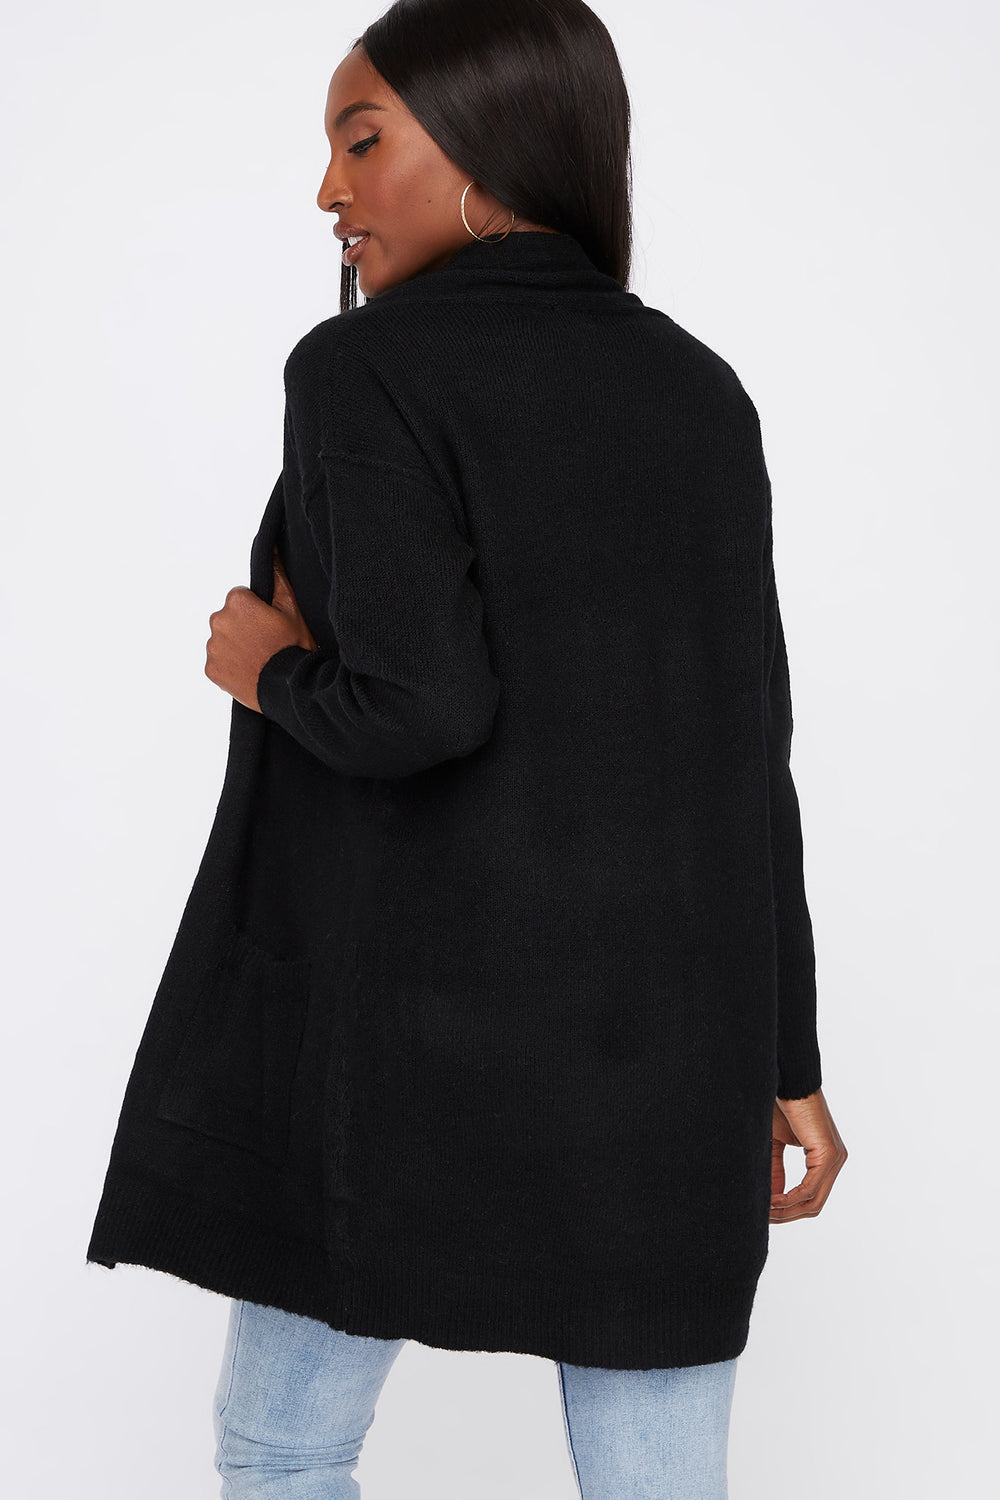 Mossy Open-Front Cardigan Black